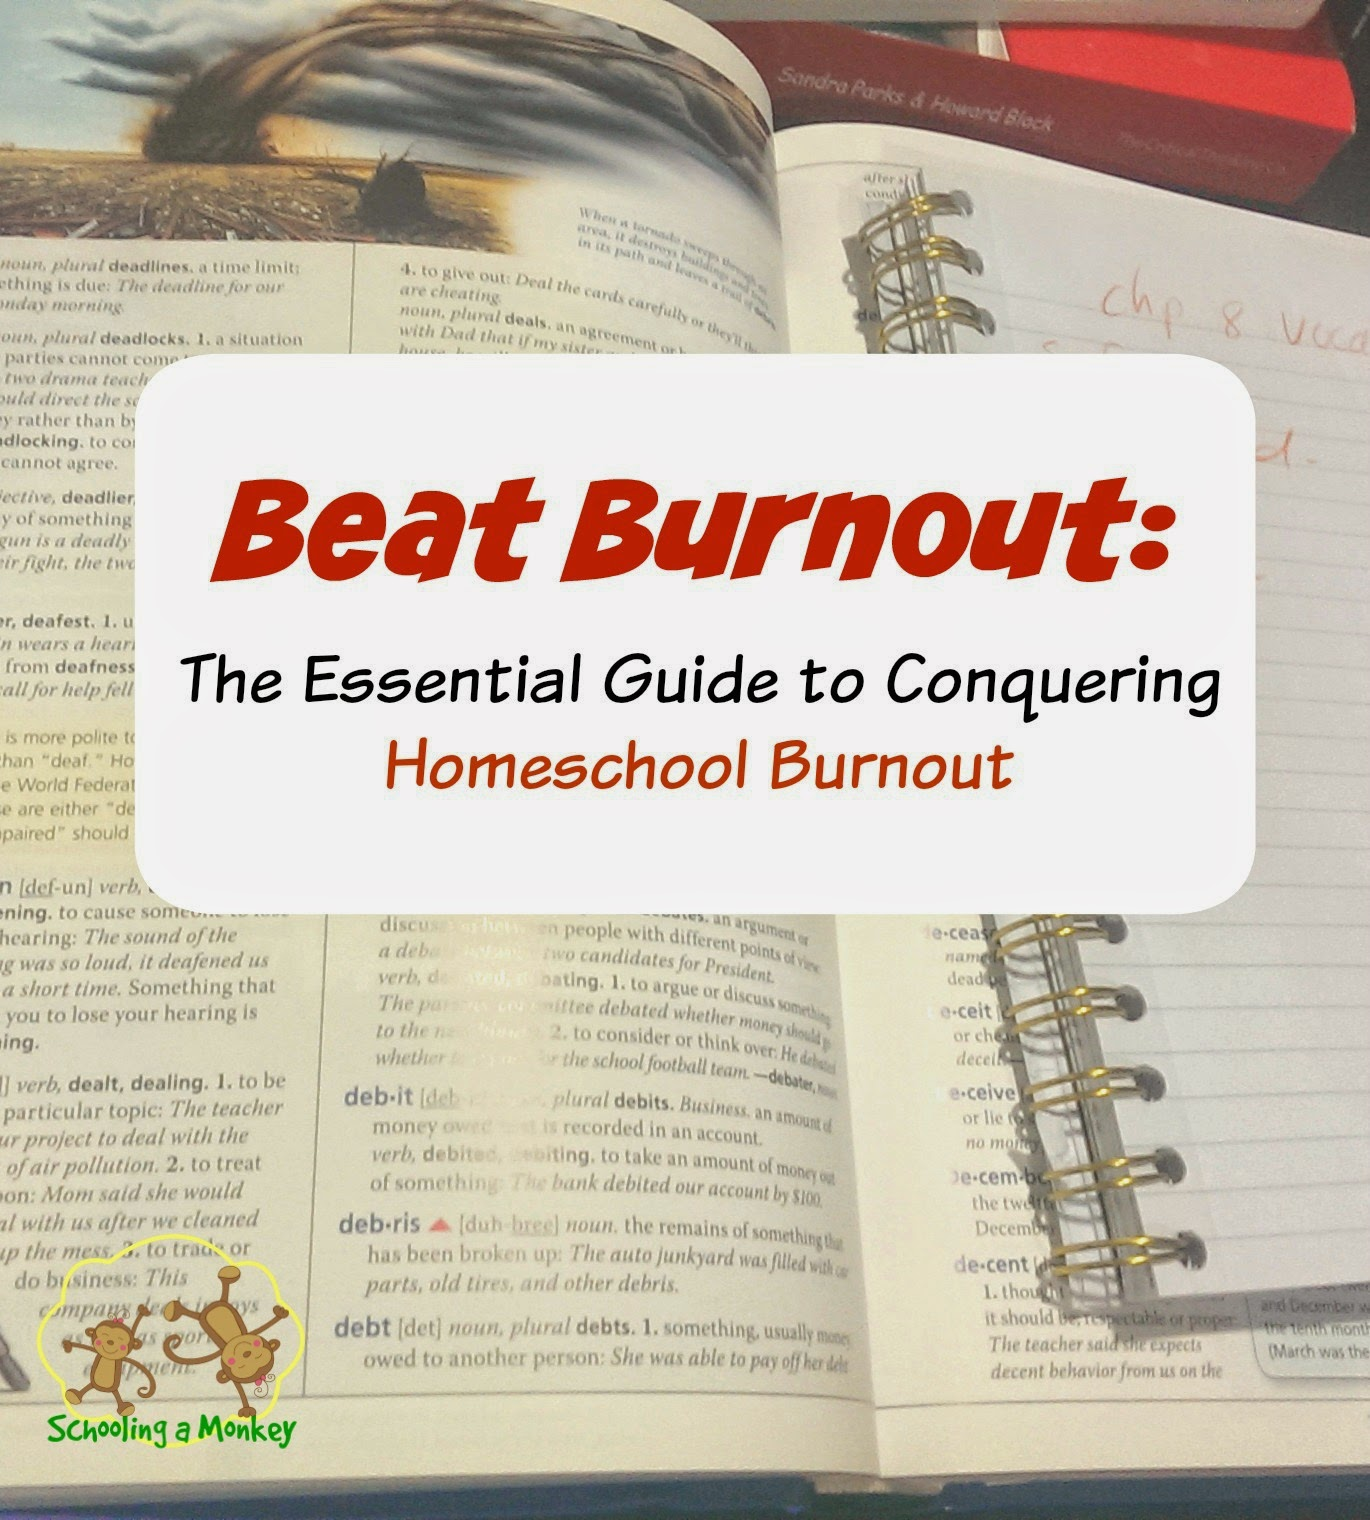 Feeling burned out with homeschooling? This helpful guide to beat homeschool burnout can help you conquer homeschool burnout for good!